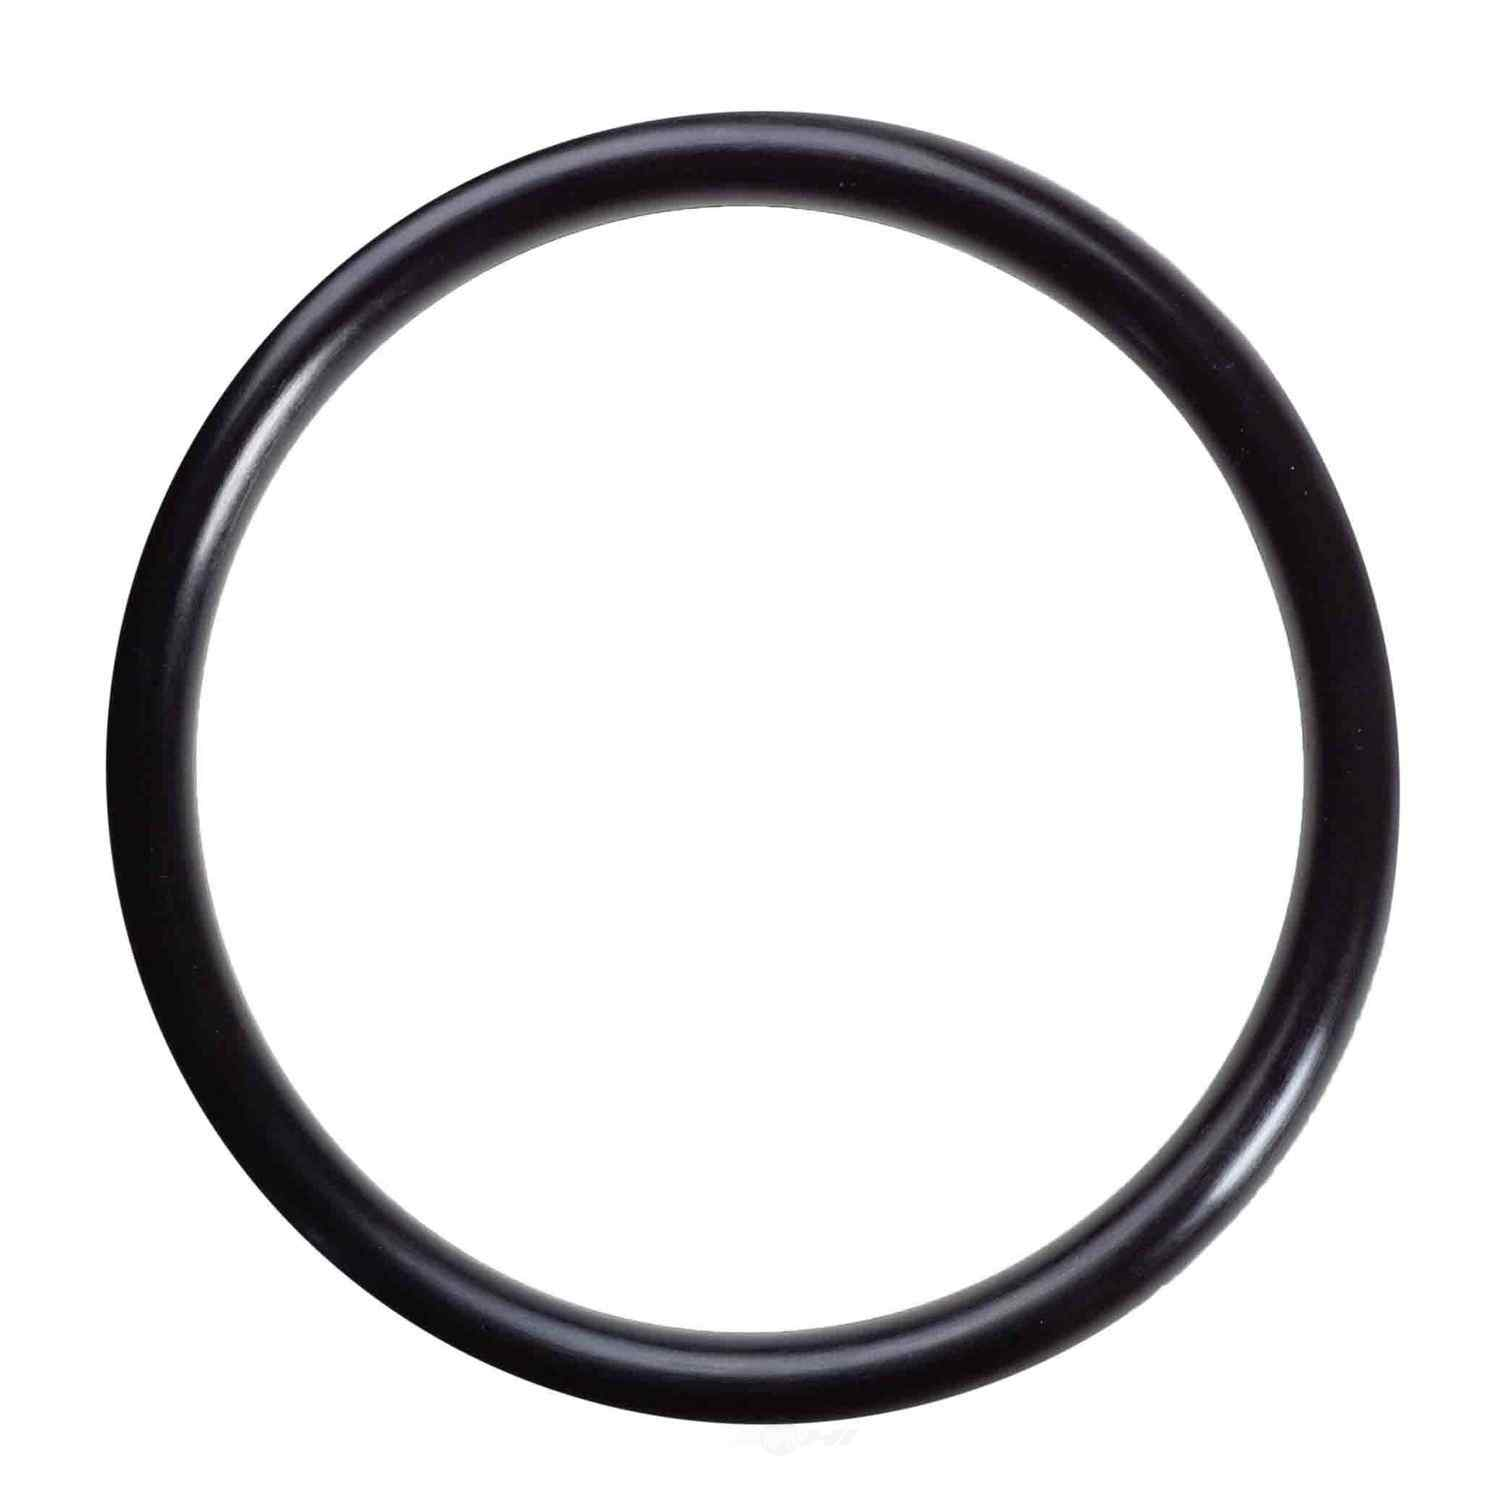 FELPRO - Engine Oil Filter Adapter O-Ring - FEL 412